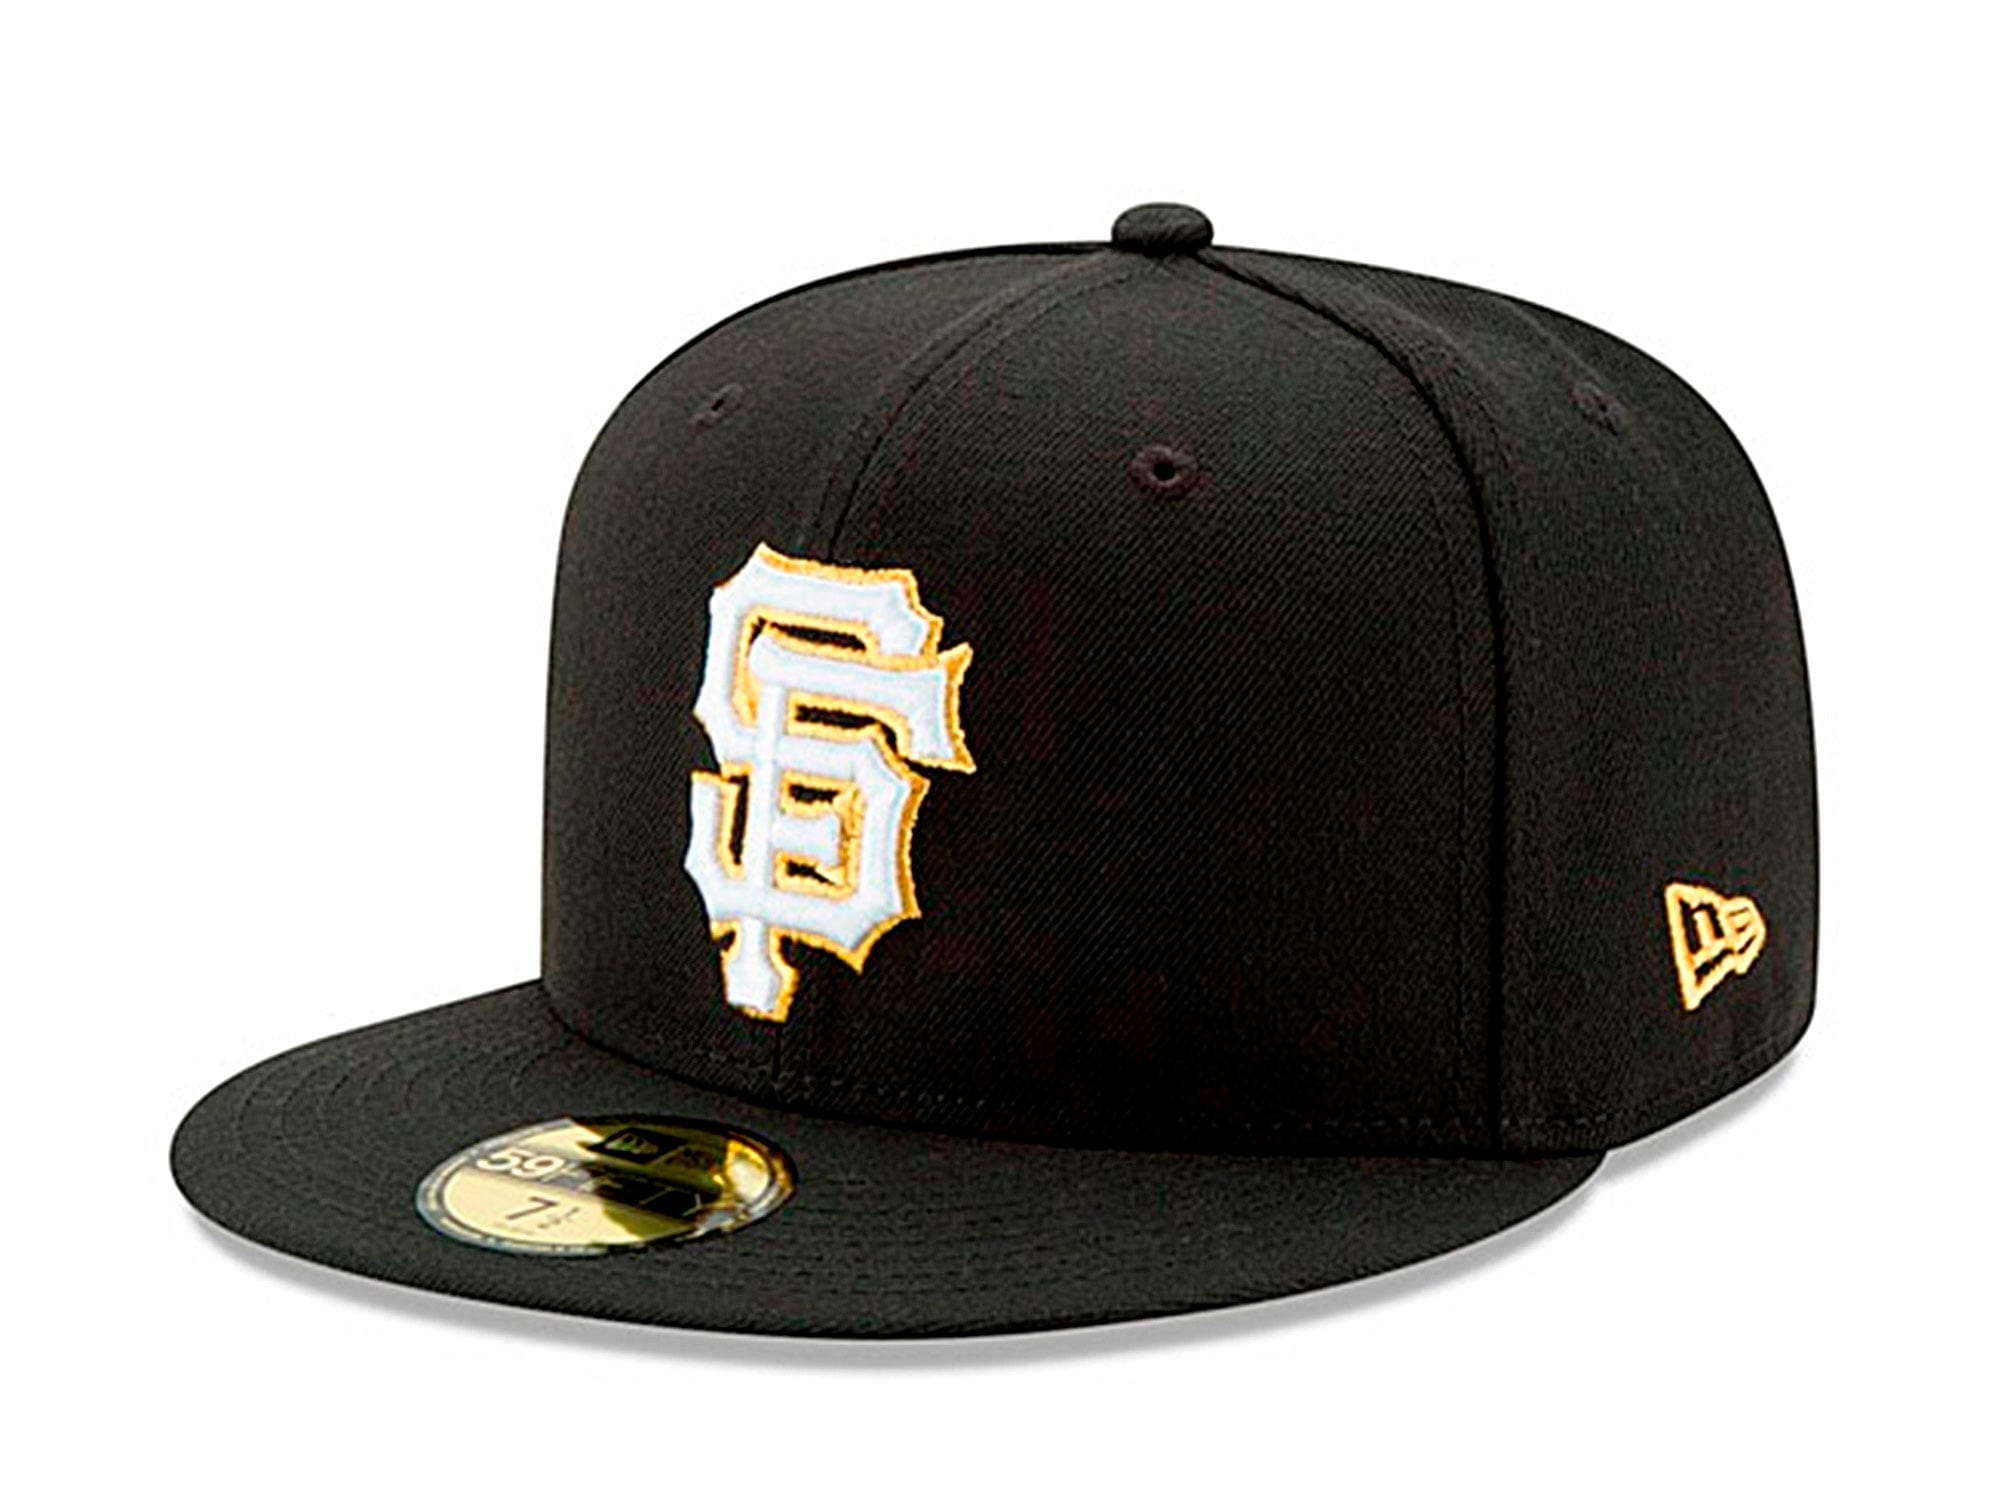 Jockey New Era San Francisco Giants 5950 Unisex Negro